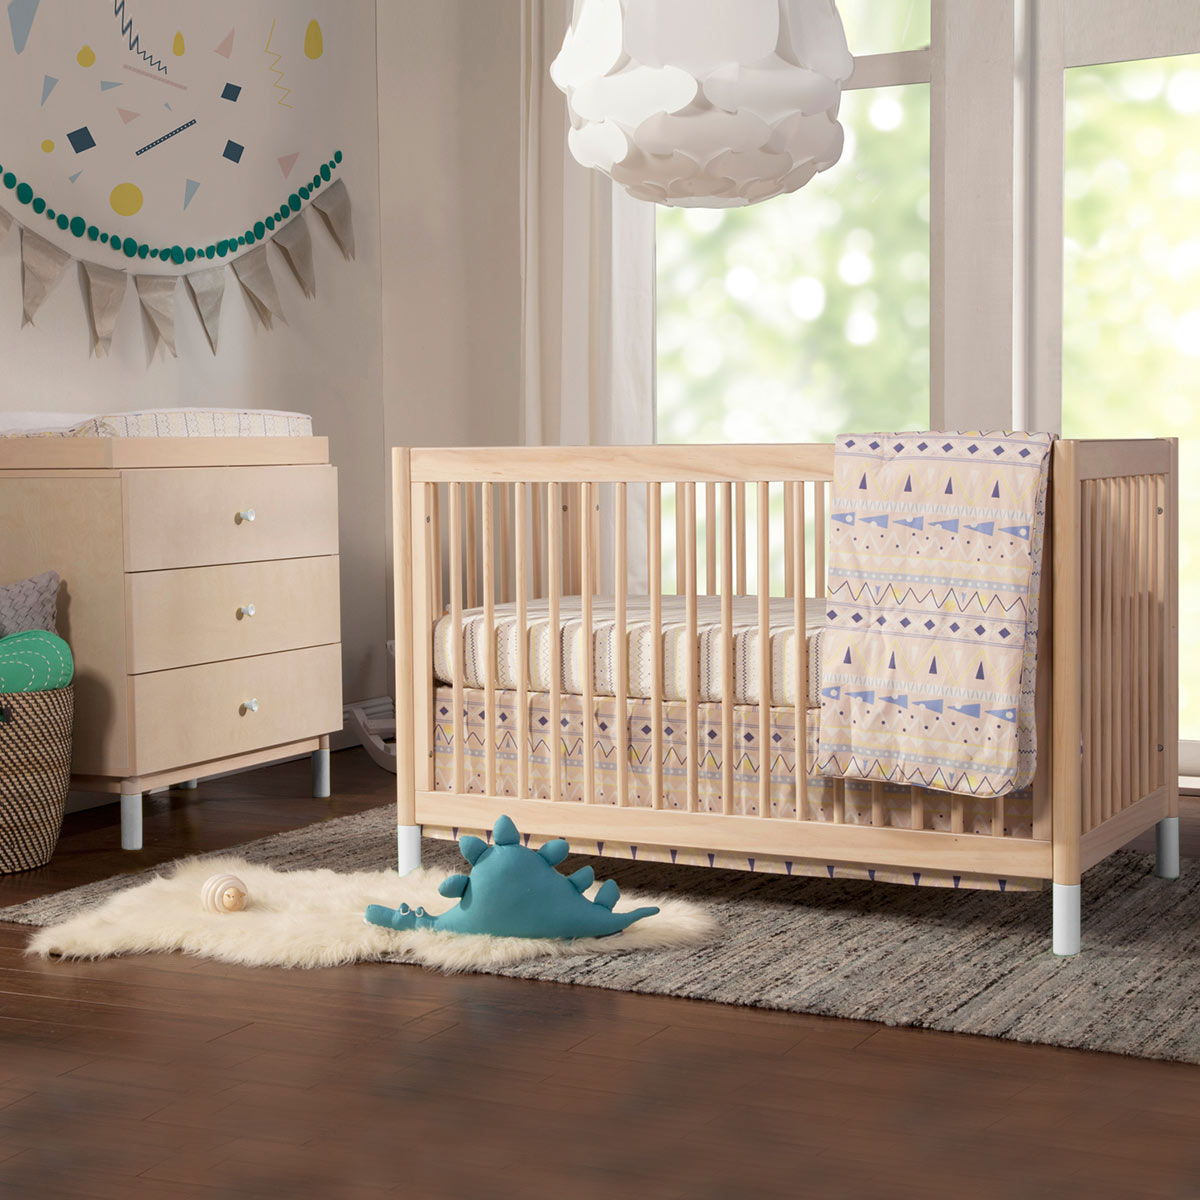 Babyletto gelato 2 piece nursery set 4 in 1 convertible crib and 3 drawer changer dresser in washed natural free shipping